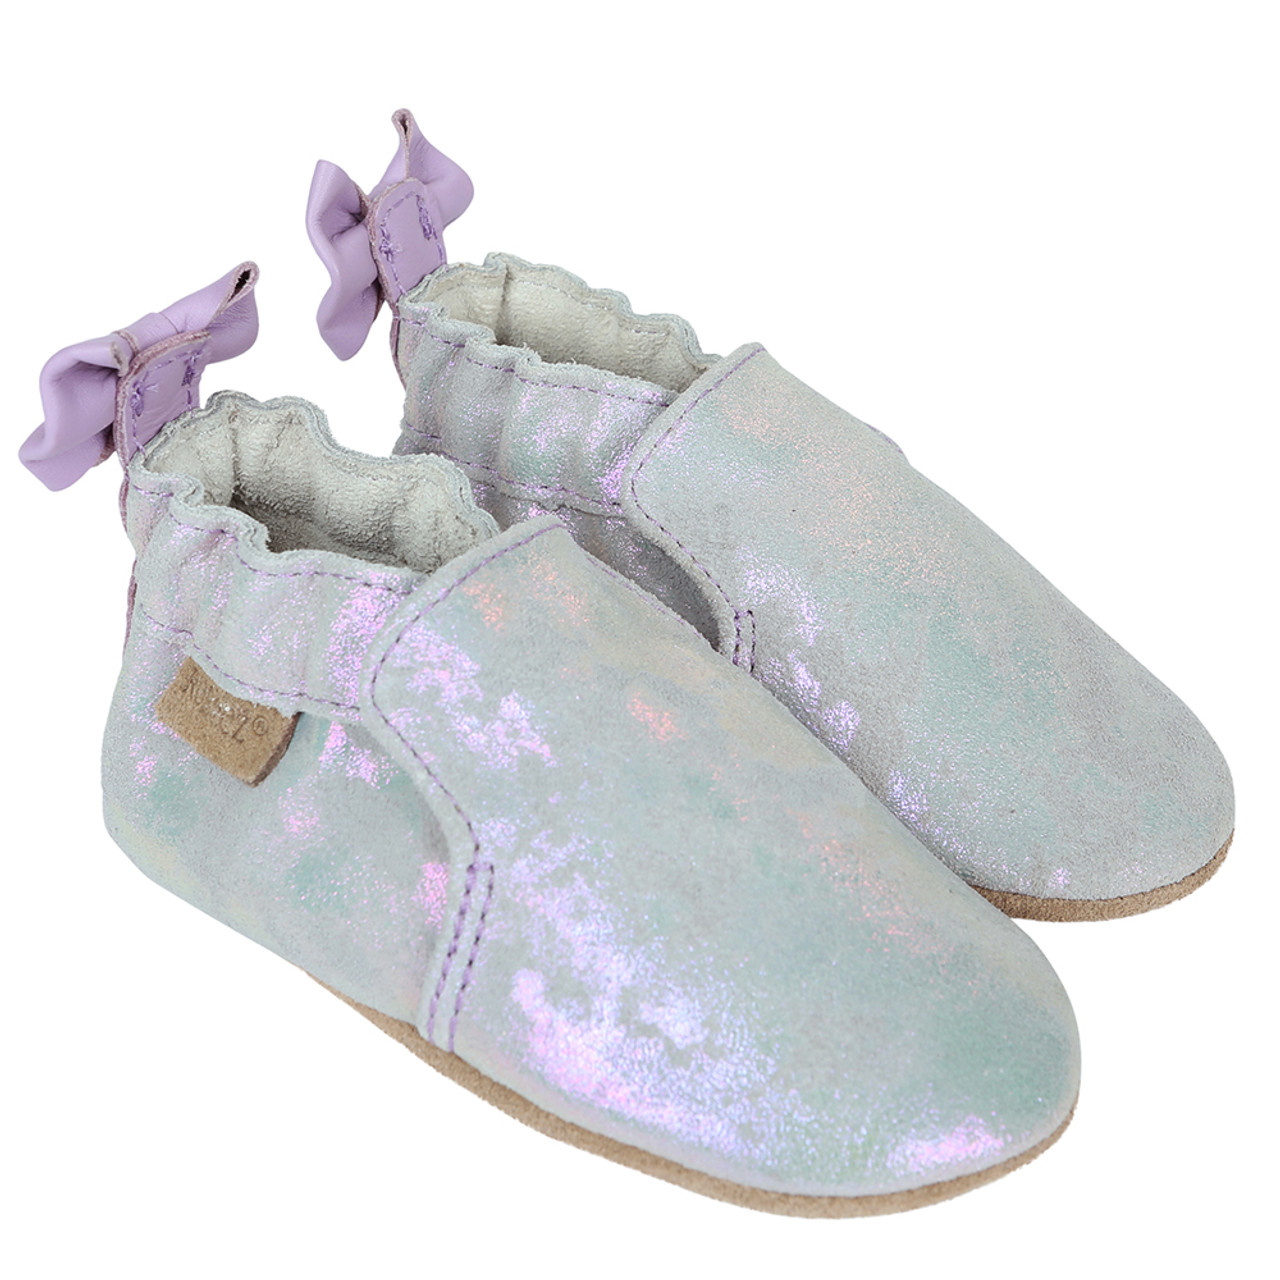 Robeez Pretty Pearl Crib Shoe(Infant/Toddler Girls') -Silver Iridescent New Arrival Best Place To Buy Online tBGzqeD7